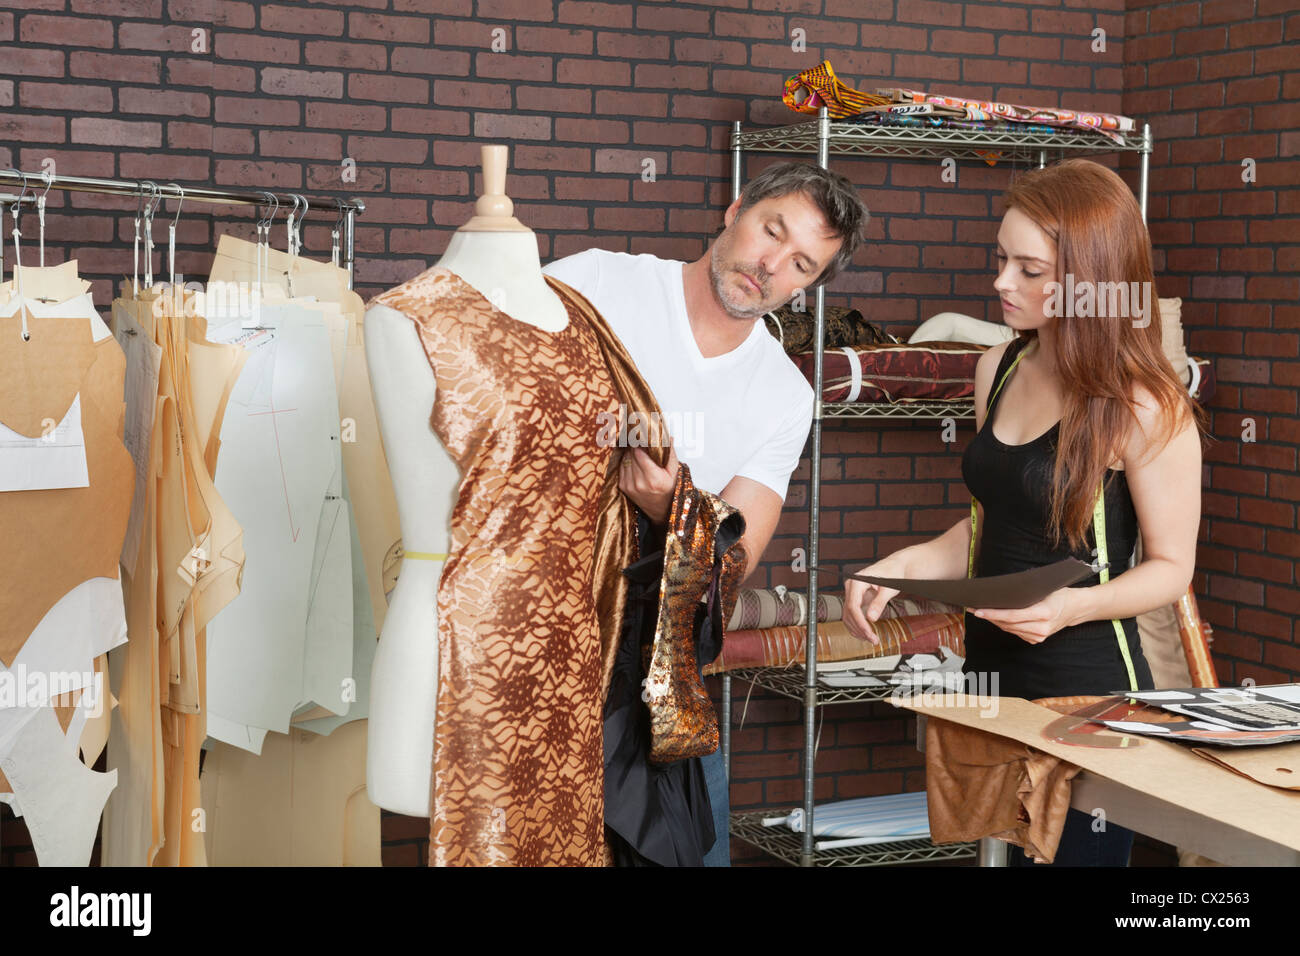 Fashion designers working together on an outfit in design studio - Stock Image